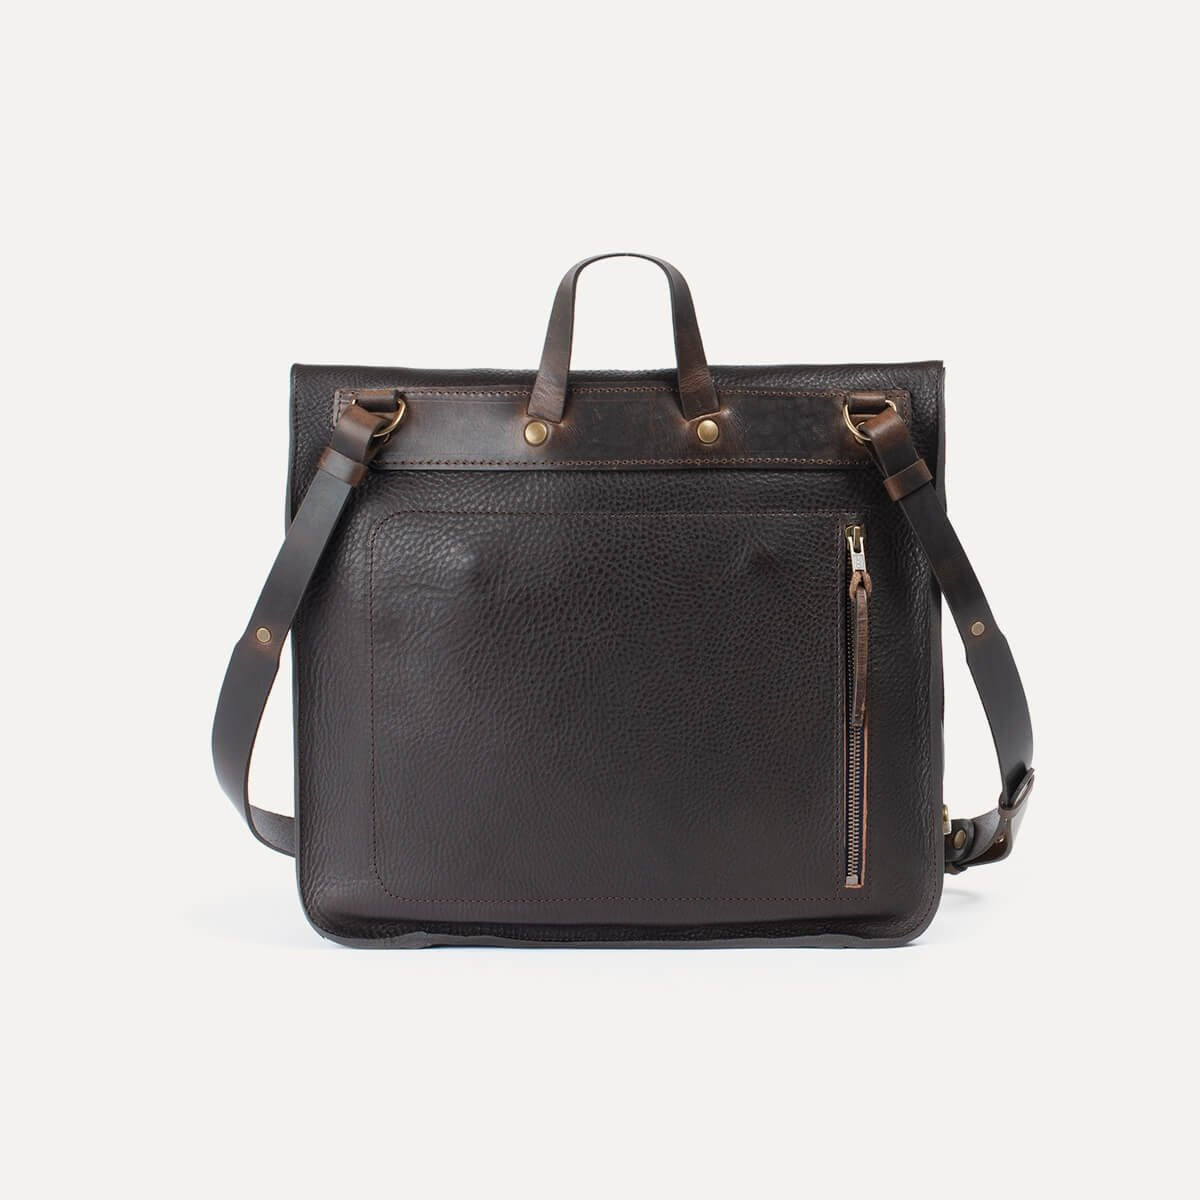 Chico Leather Satchel - Dark Brown / E Pure (image n°5)